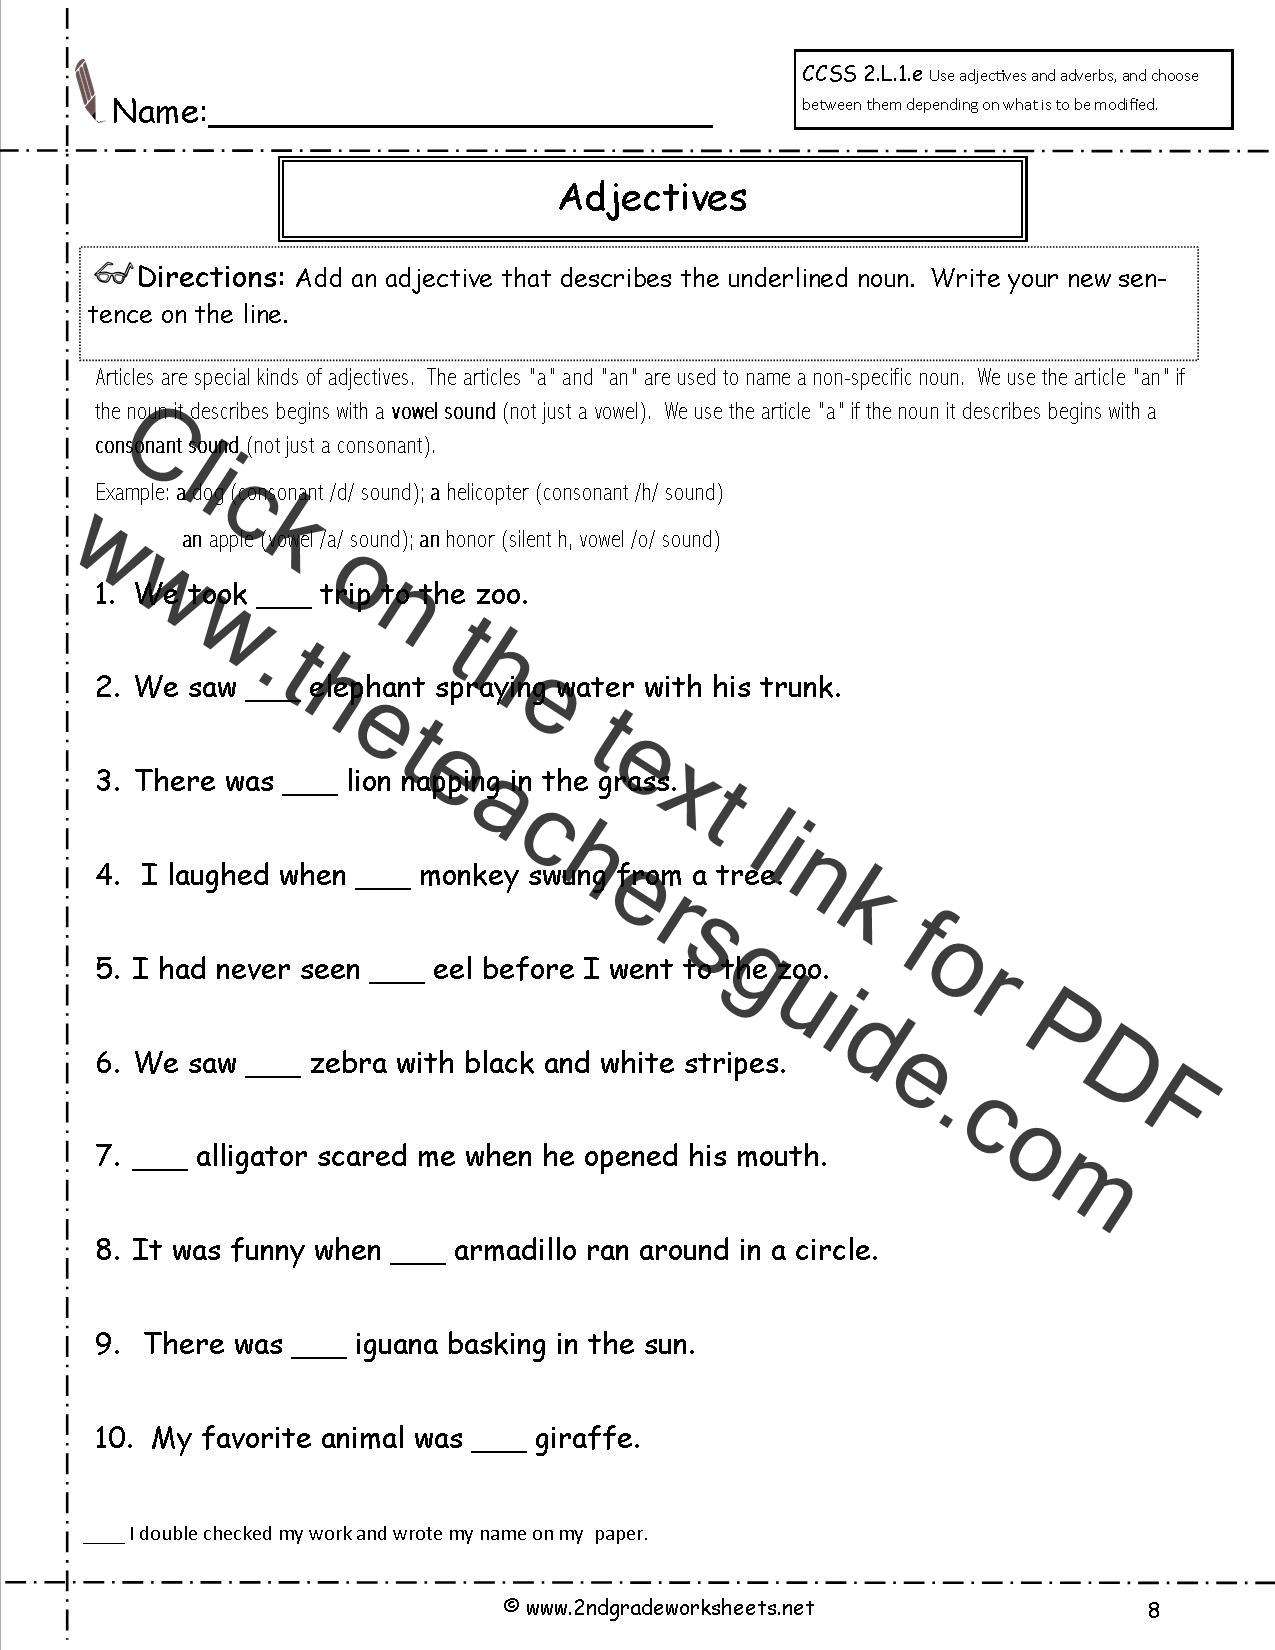 Printables Free Language Worksheets free languagegrammar worksheets and printouts adjectives worksheets